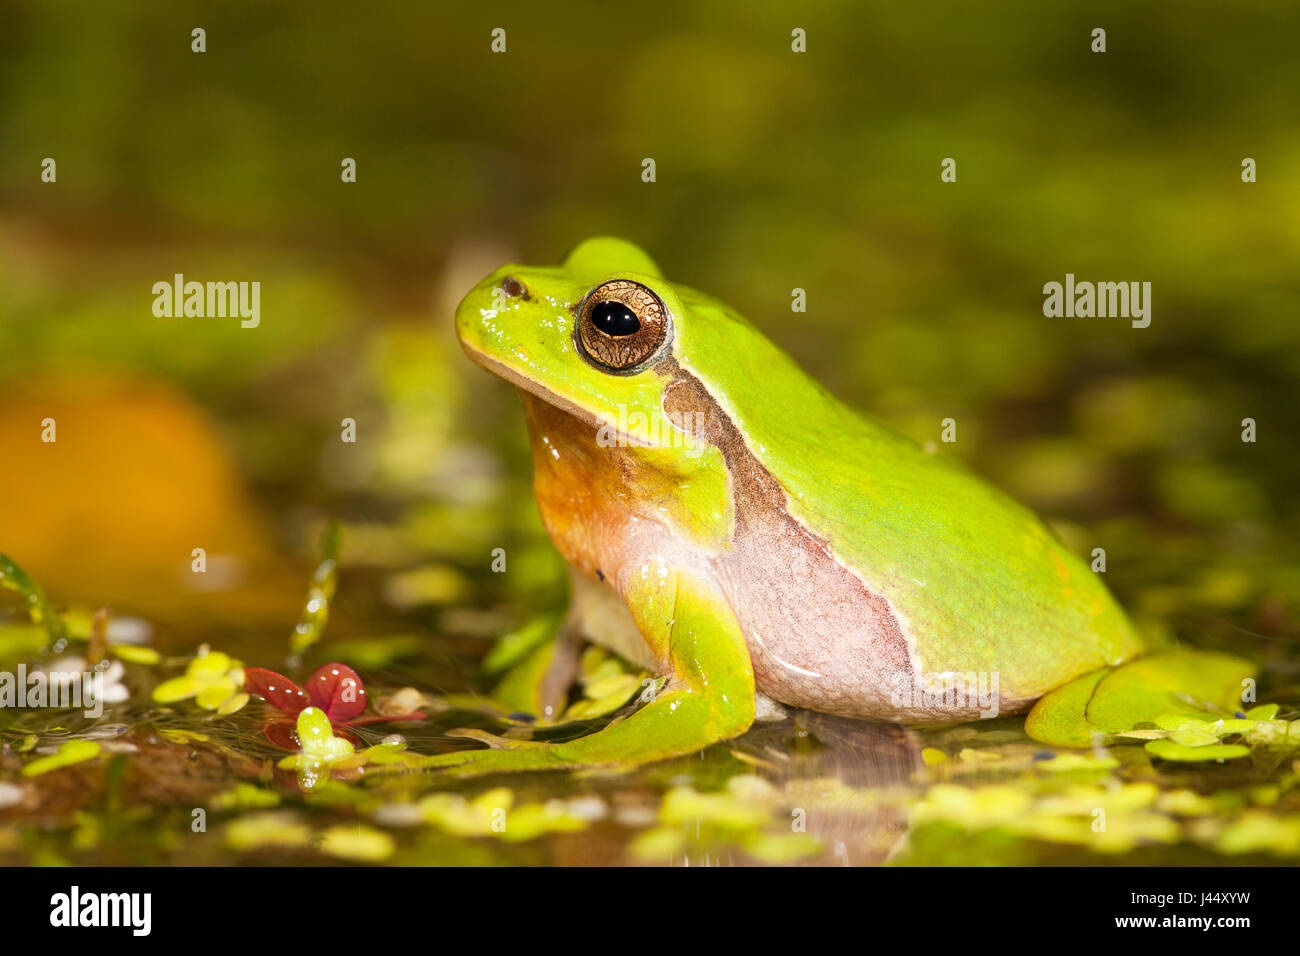 photo of a male common tree frog in the breeding pond at night - Stock Image